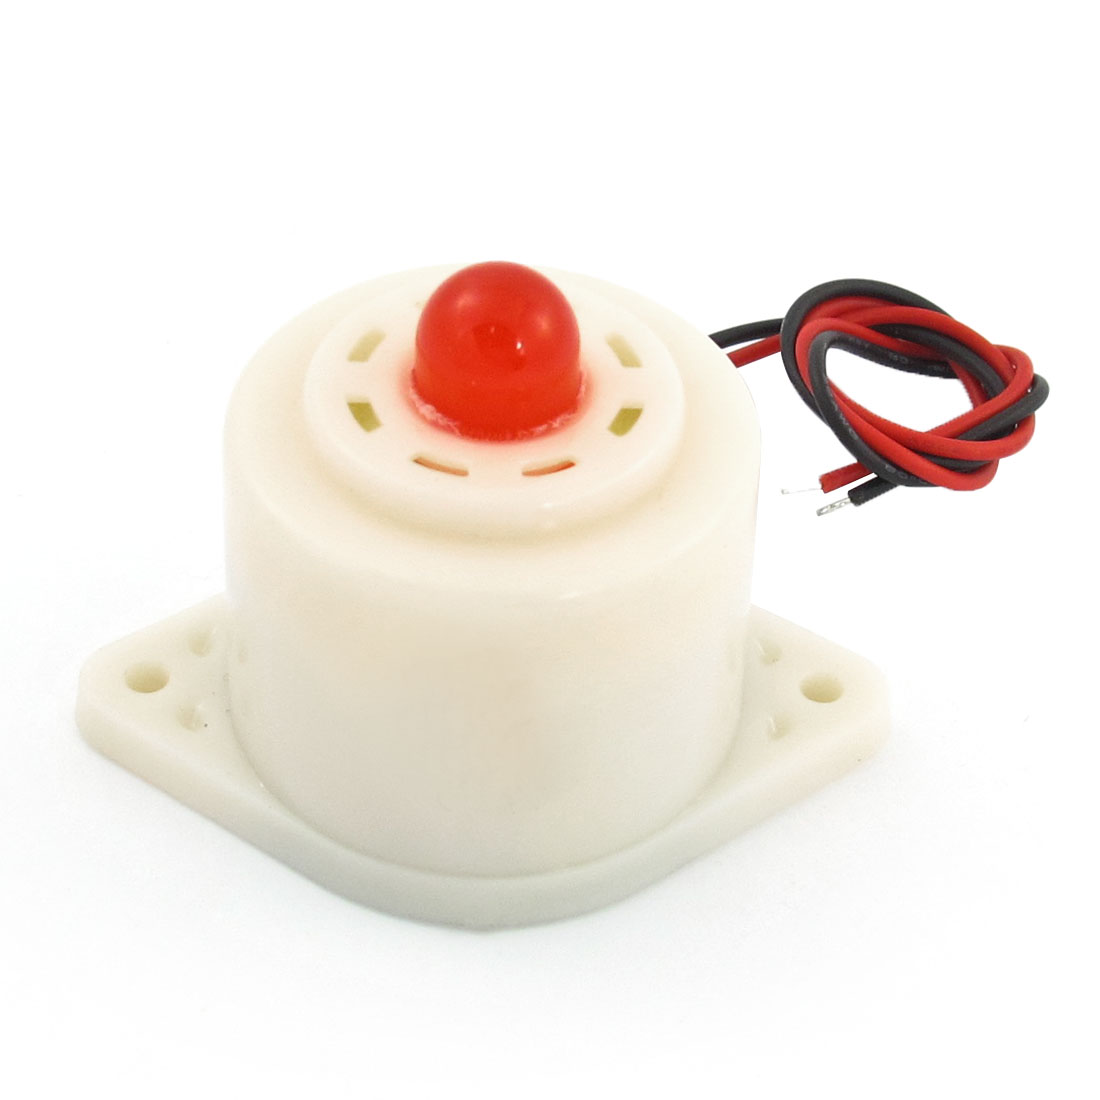 BZQ-3D DC 24V Industrial Red LED Flashing Alarm Buzzer Siren 110dB